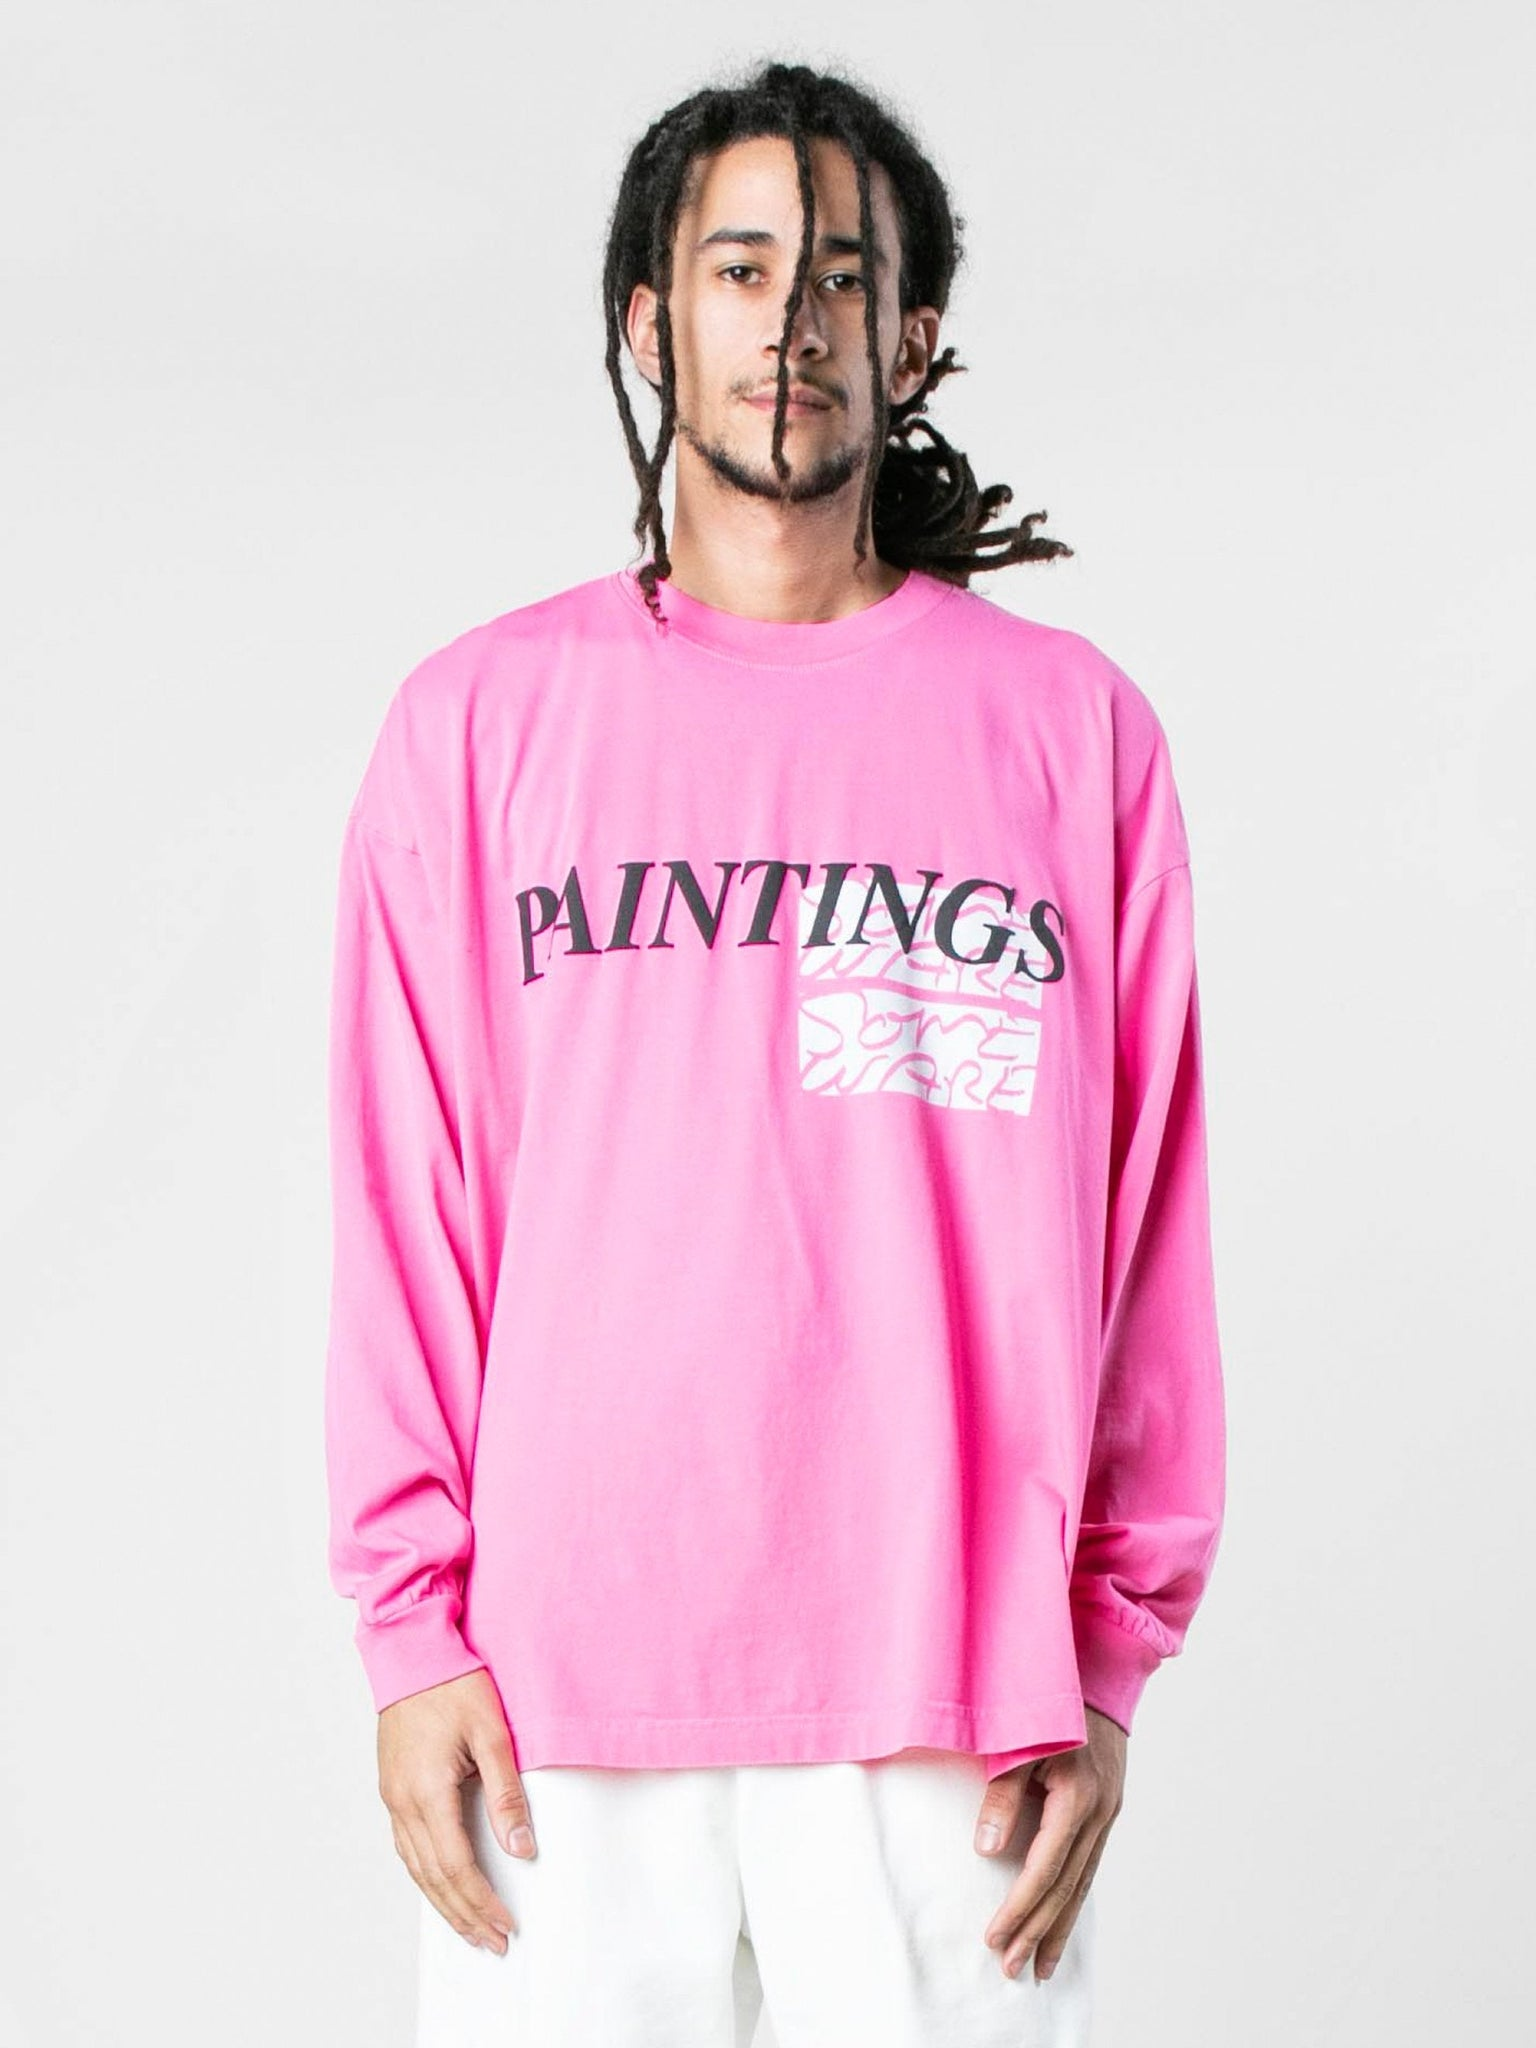 paintings-long-sleeve-t-shirt-1